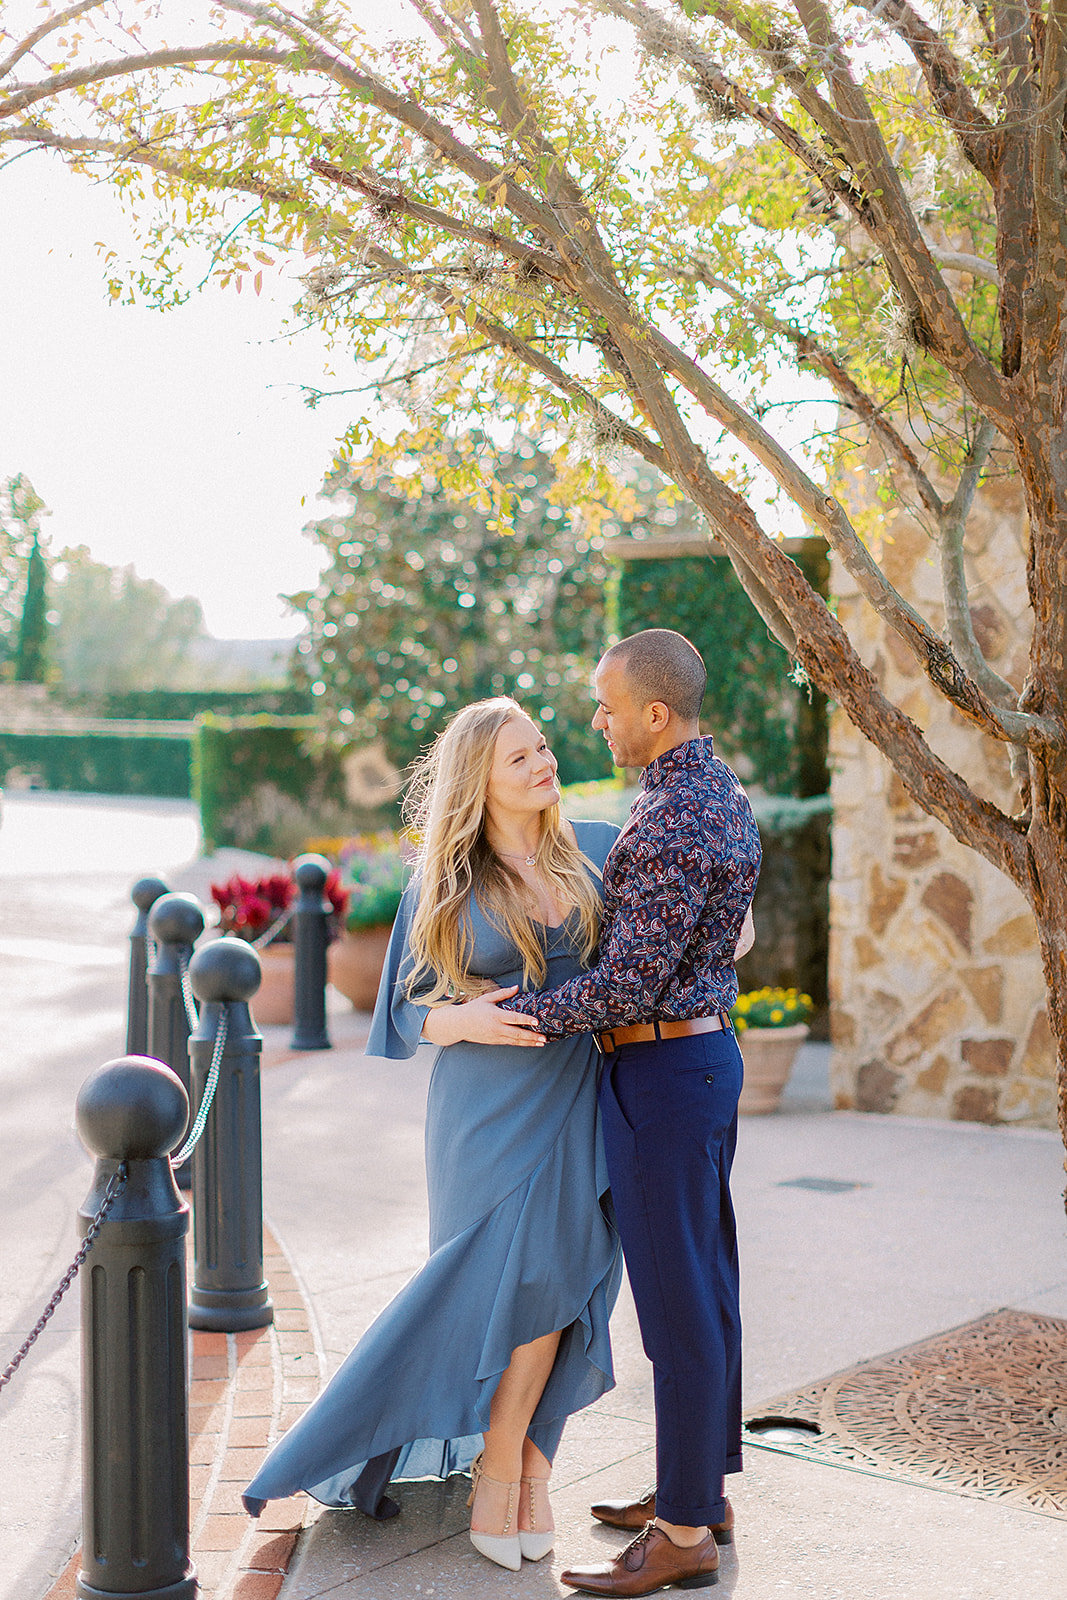 Rachel_+_Manny_Bello_Engagement_Session_Bella_Collina_Photographer_Casie_Marie_Photography-45